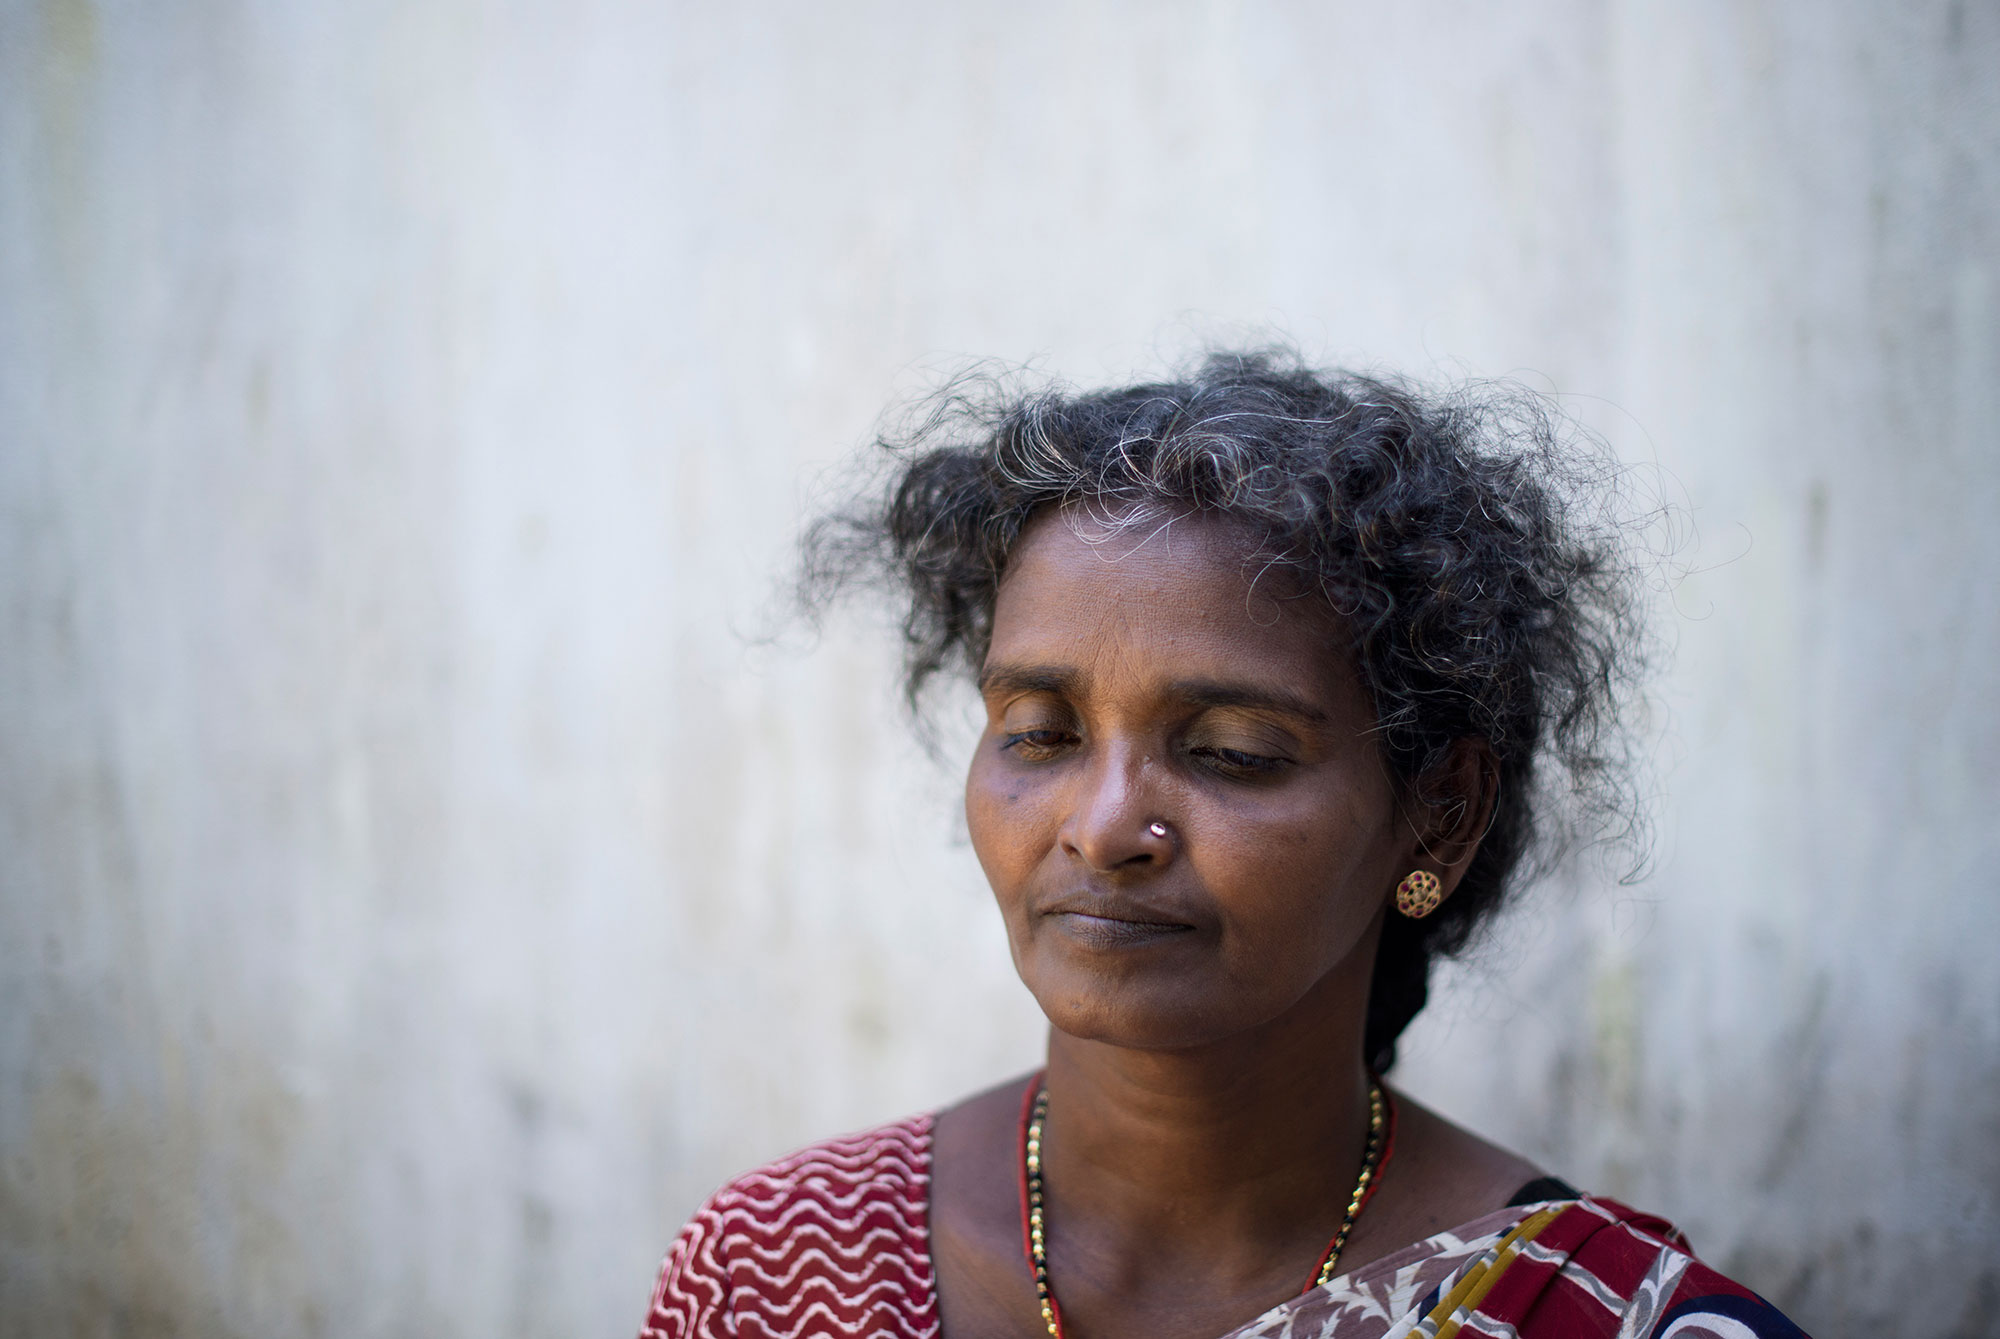 'In the last weeks of the war, my family had been dispersed, but on May 14, 2009, we all managed to get together in the 'safe zone' the army had established in Mullivaikal. They said civilians wouldn't be harmed there, so we found shelter in a small house ... We were happy to be together at last. But that same night, the building was shelled ... My husband was lying on the ground and, when I turned him around, I saw his chest open. He was dead. Next to him was my oldest daughter. She was holding her intestines in her hands, sure that she was going to die,' remembers Balasubramaniam Annaludchumy, who lost five members of her family that night. [Miguel Candela/Al Jazeera]